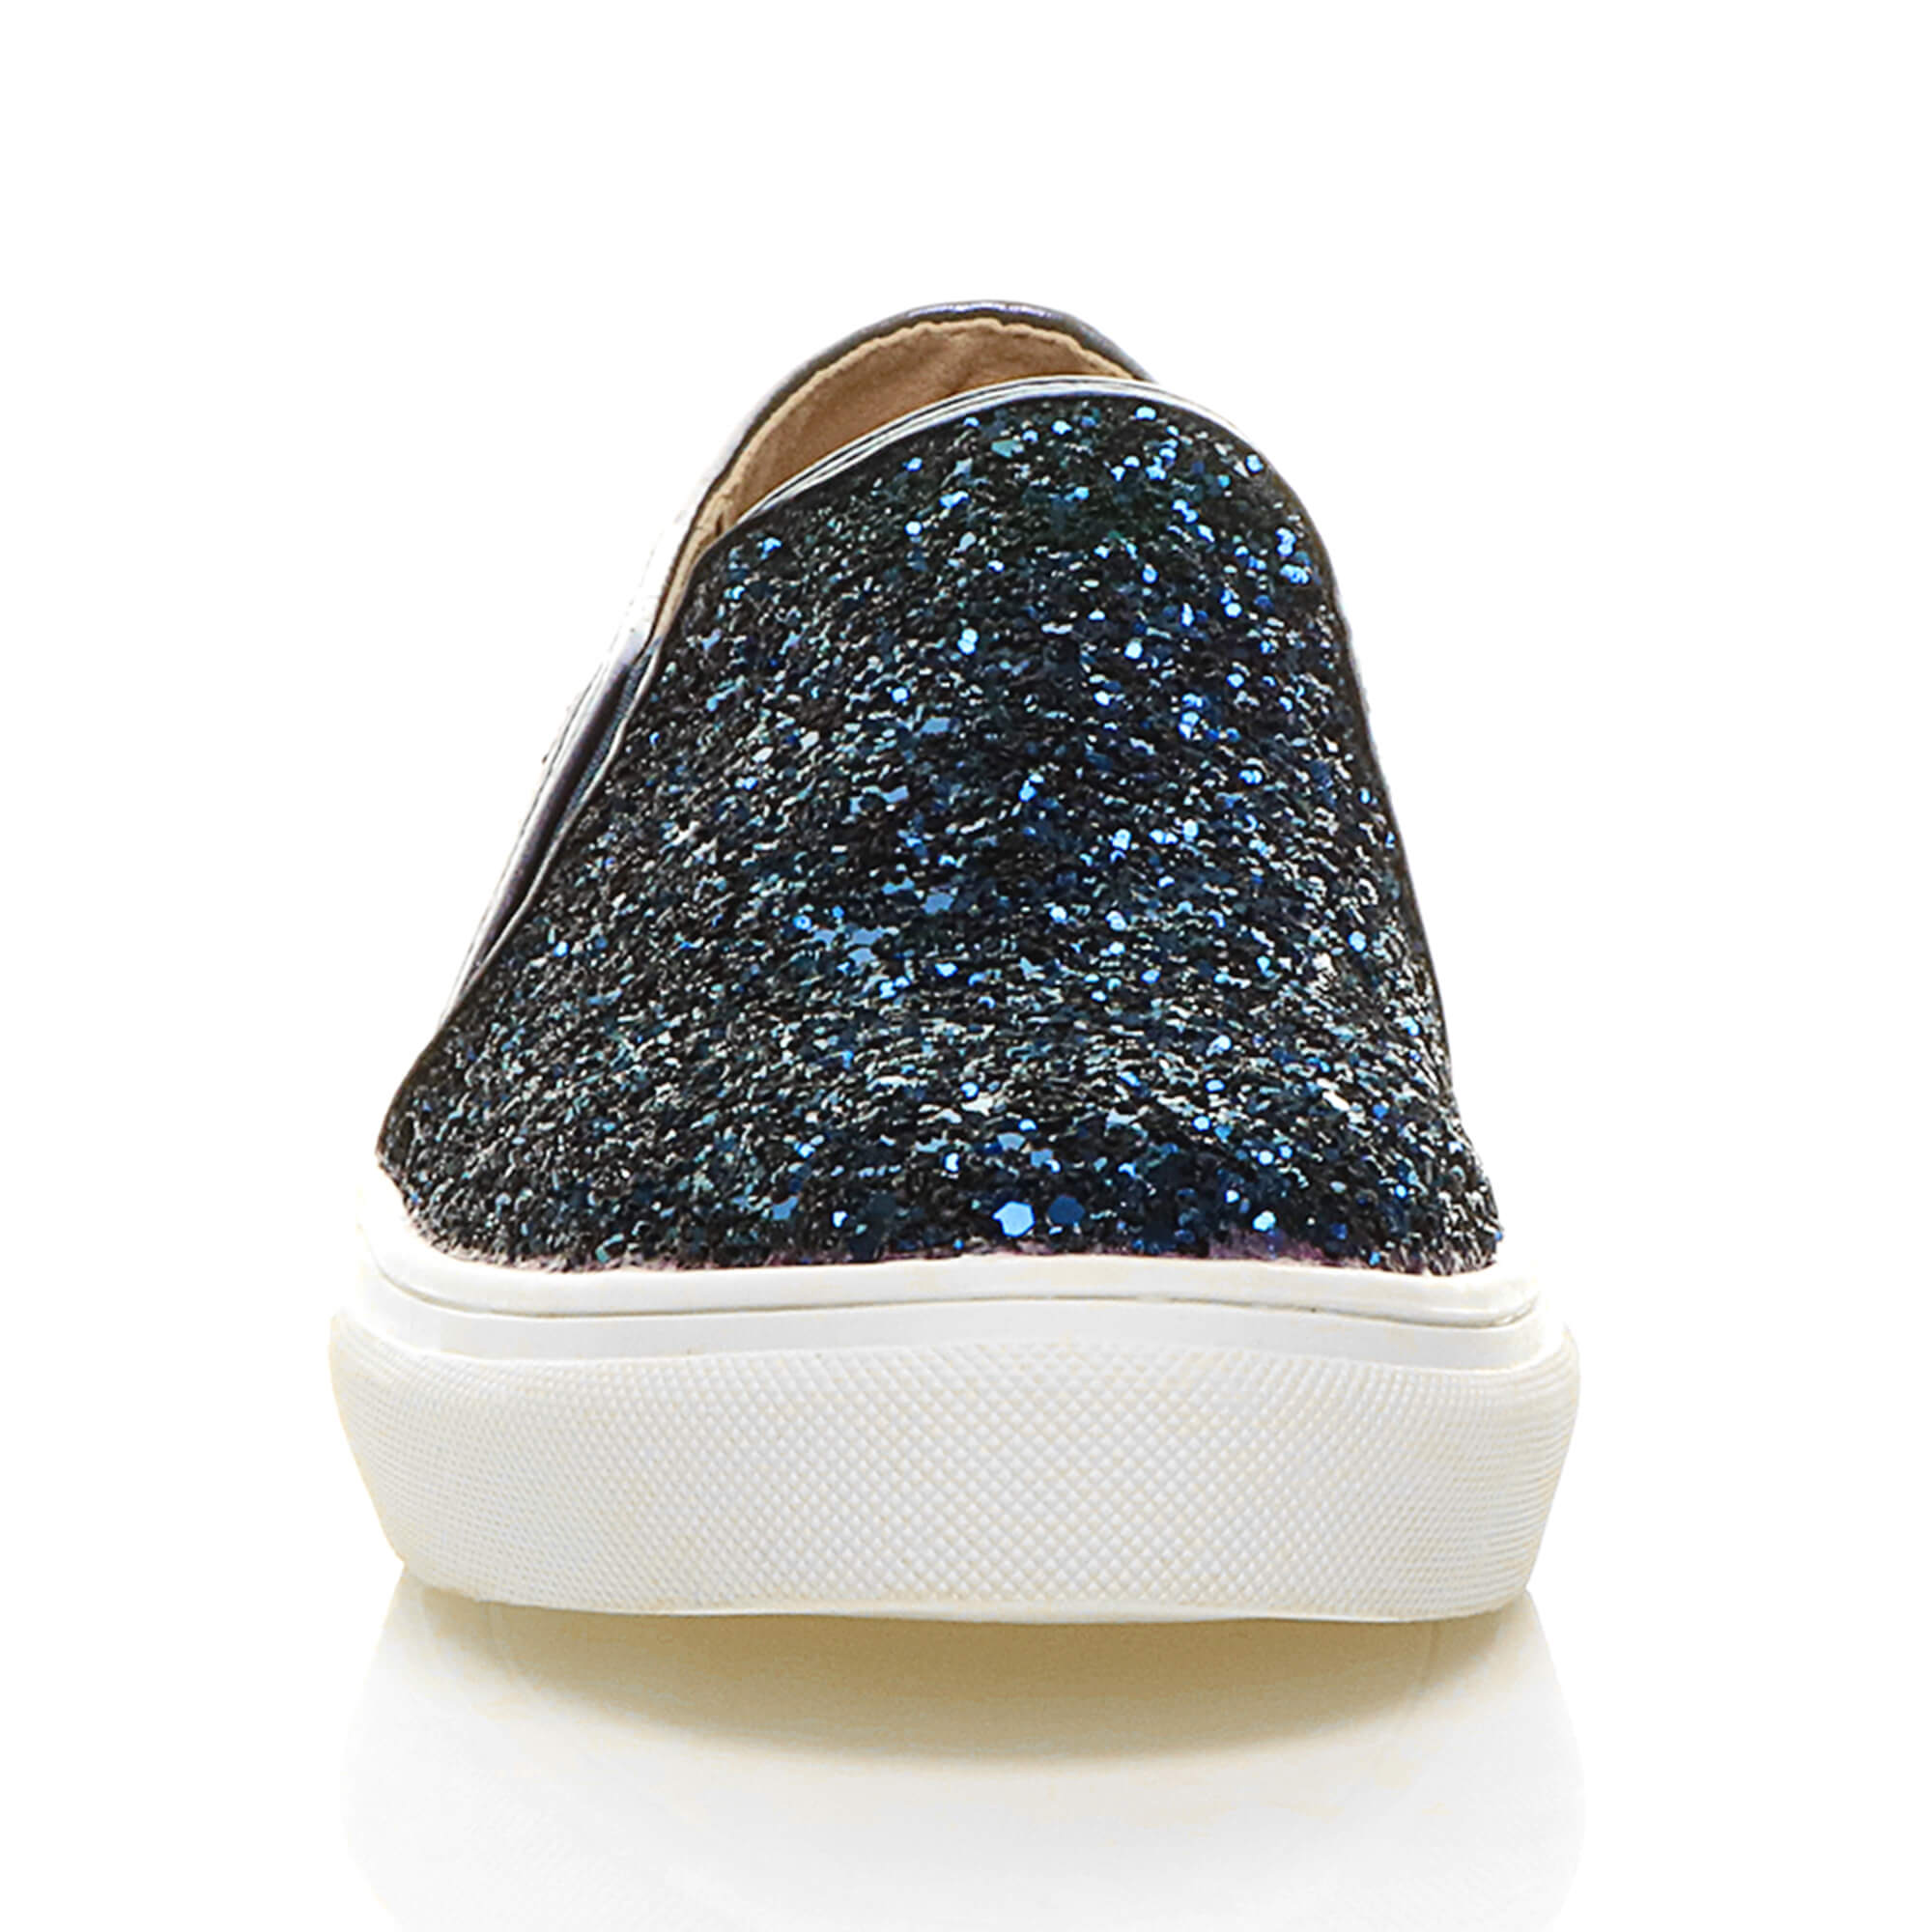 WOMENS-LADIES-FLAT-SLIP-ON-GLITTER-PLIMSOLLS-PUMPS-TRAINERS-SKATER-SHOES-SIZE